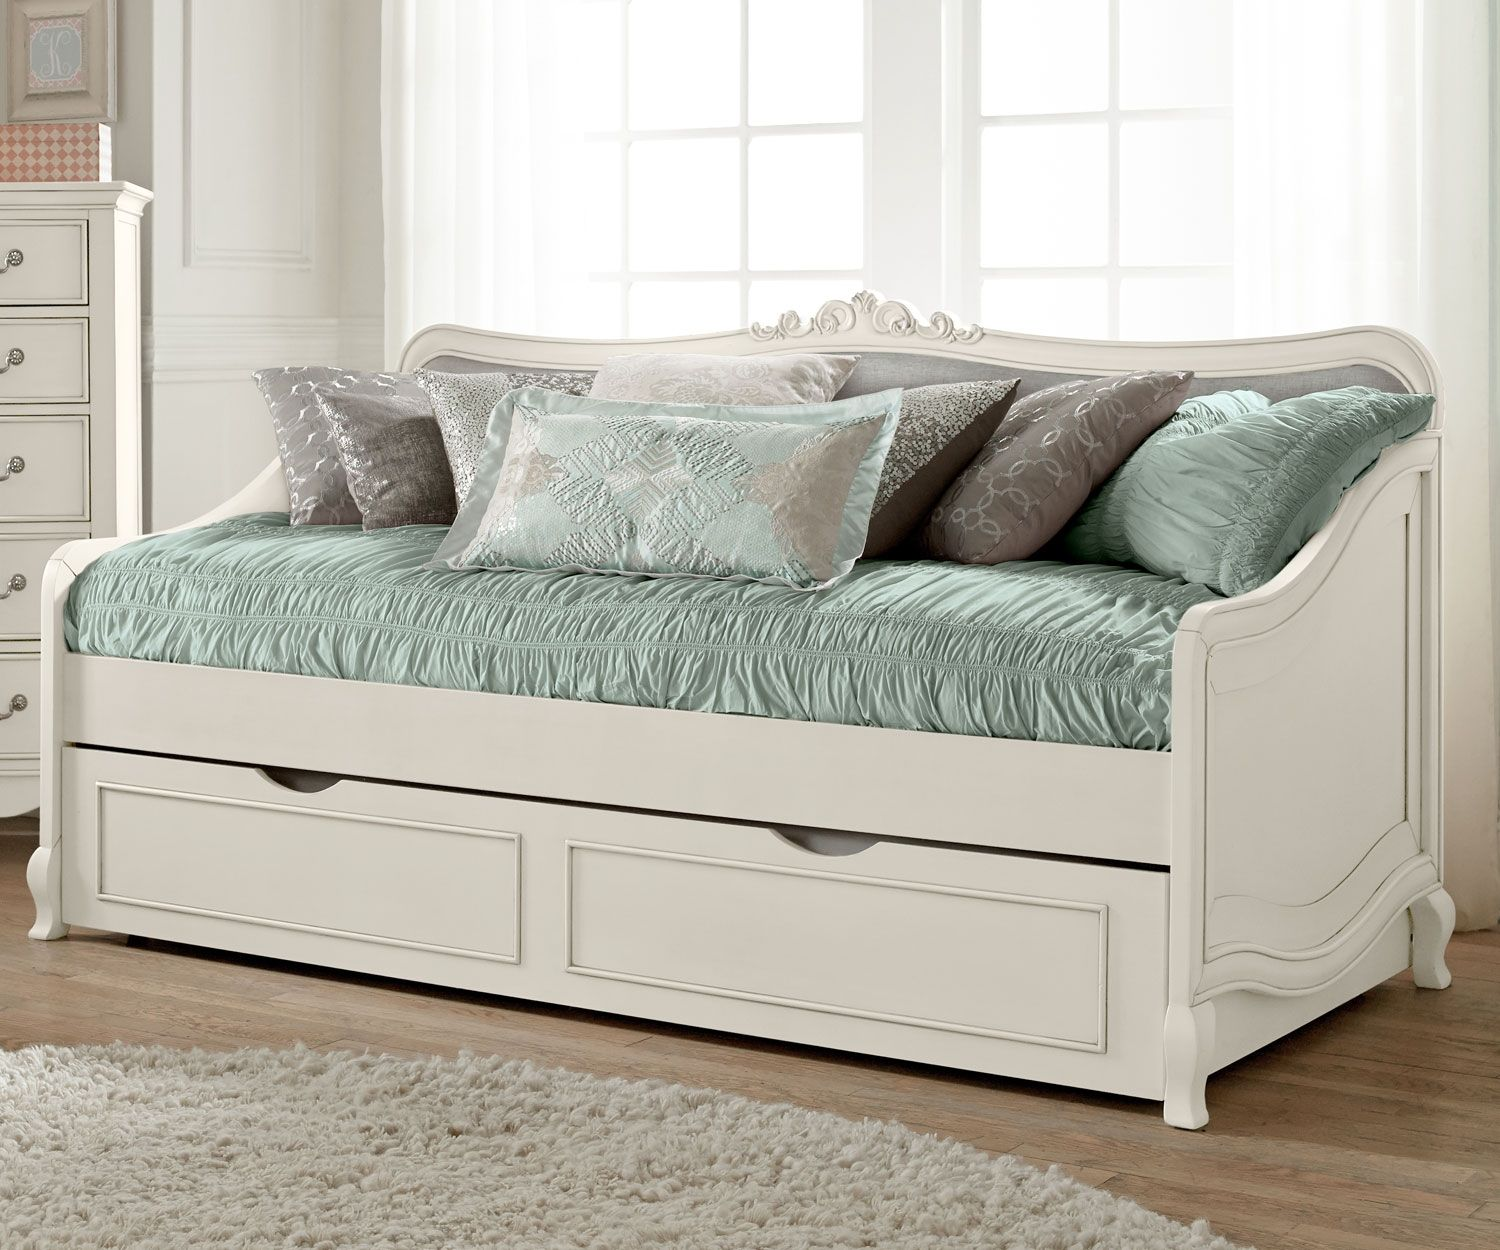 eKids Rooms White daybed, Daybed with trundle, Girls